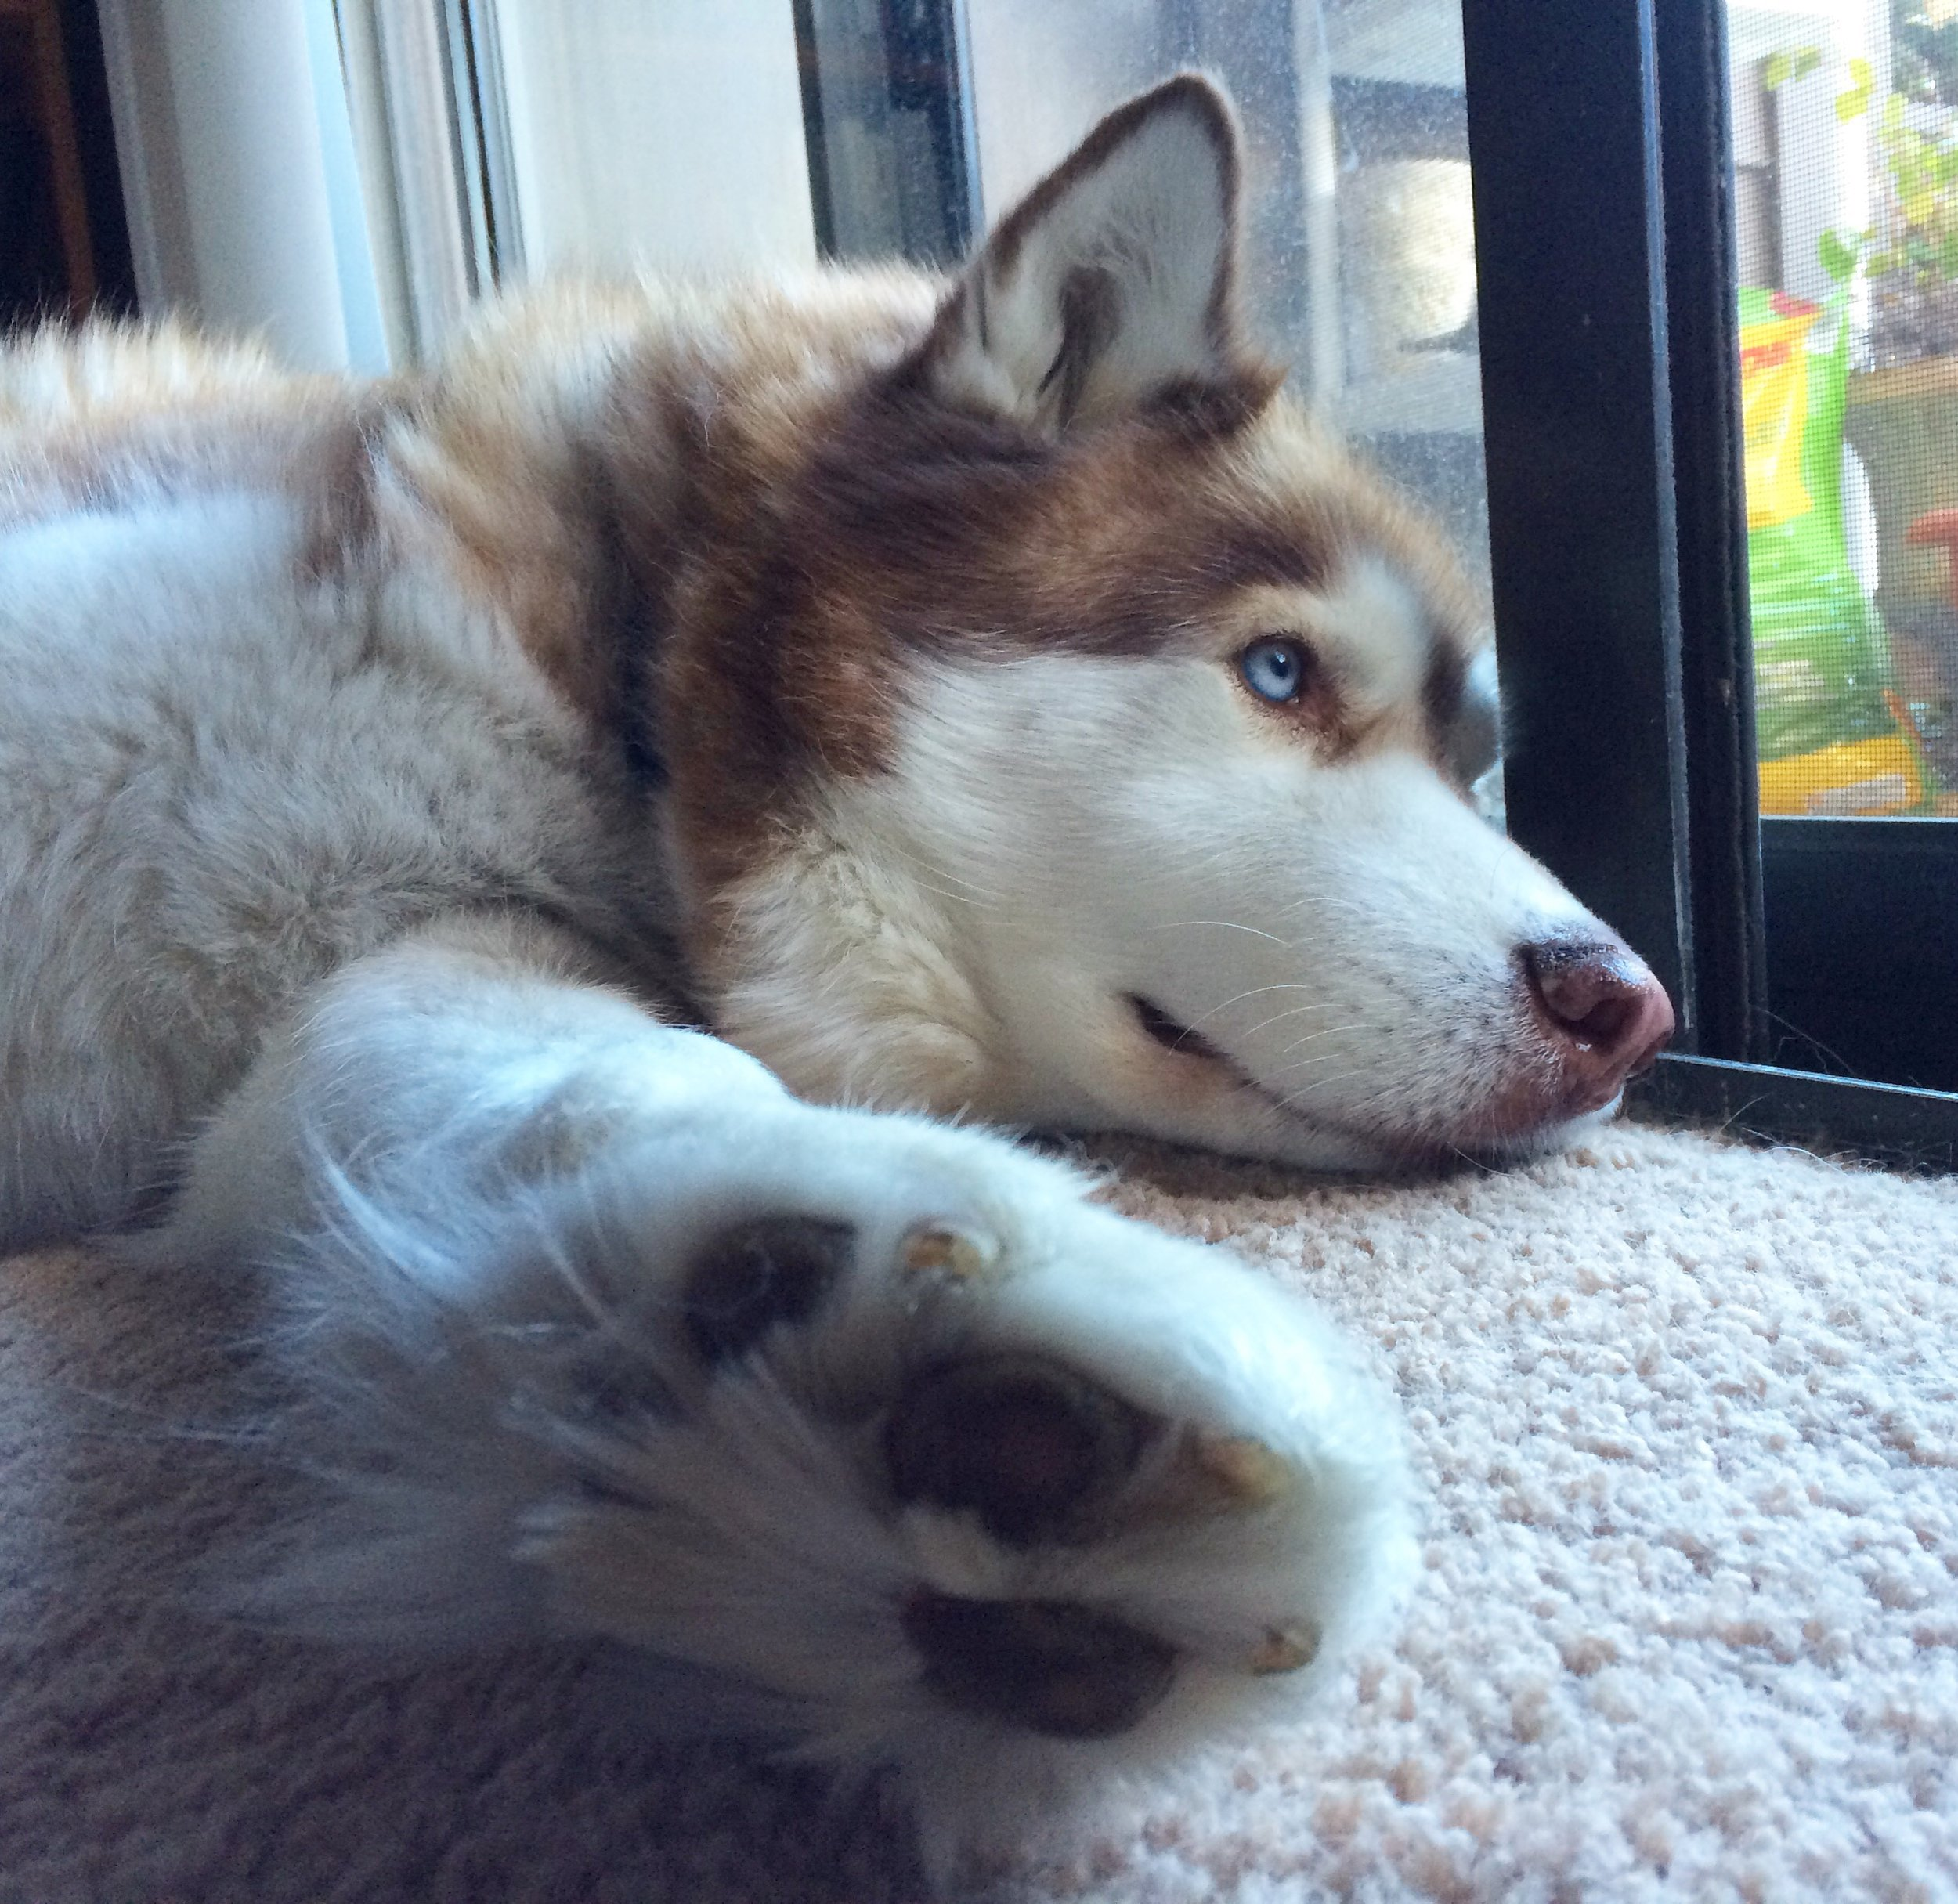 Deep in thought. Talk to the paw.